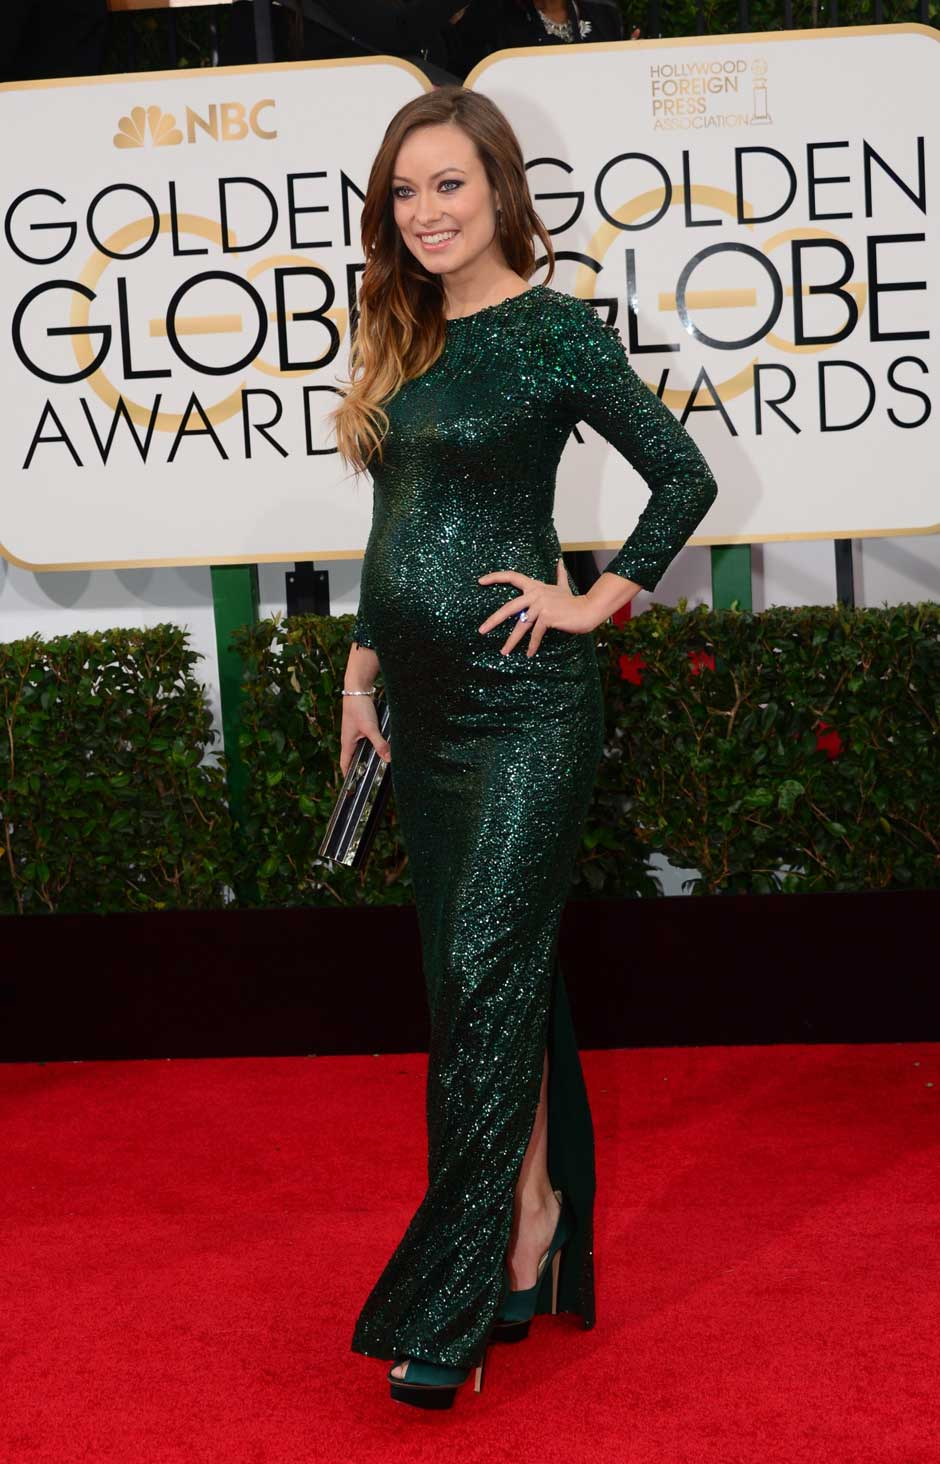 Mom to be Olivia Wilde was glowing in this gorgeous emerald green sequin gown from Gucci.